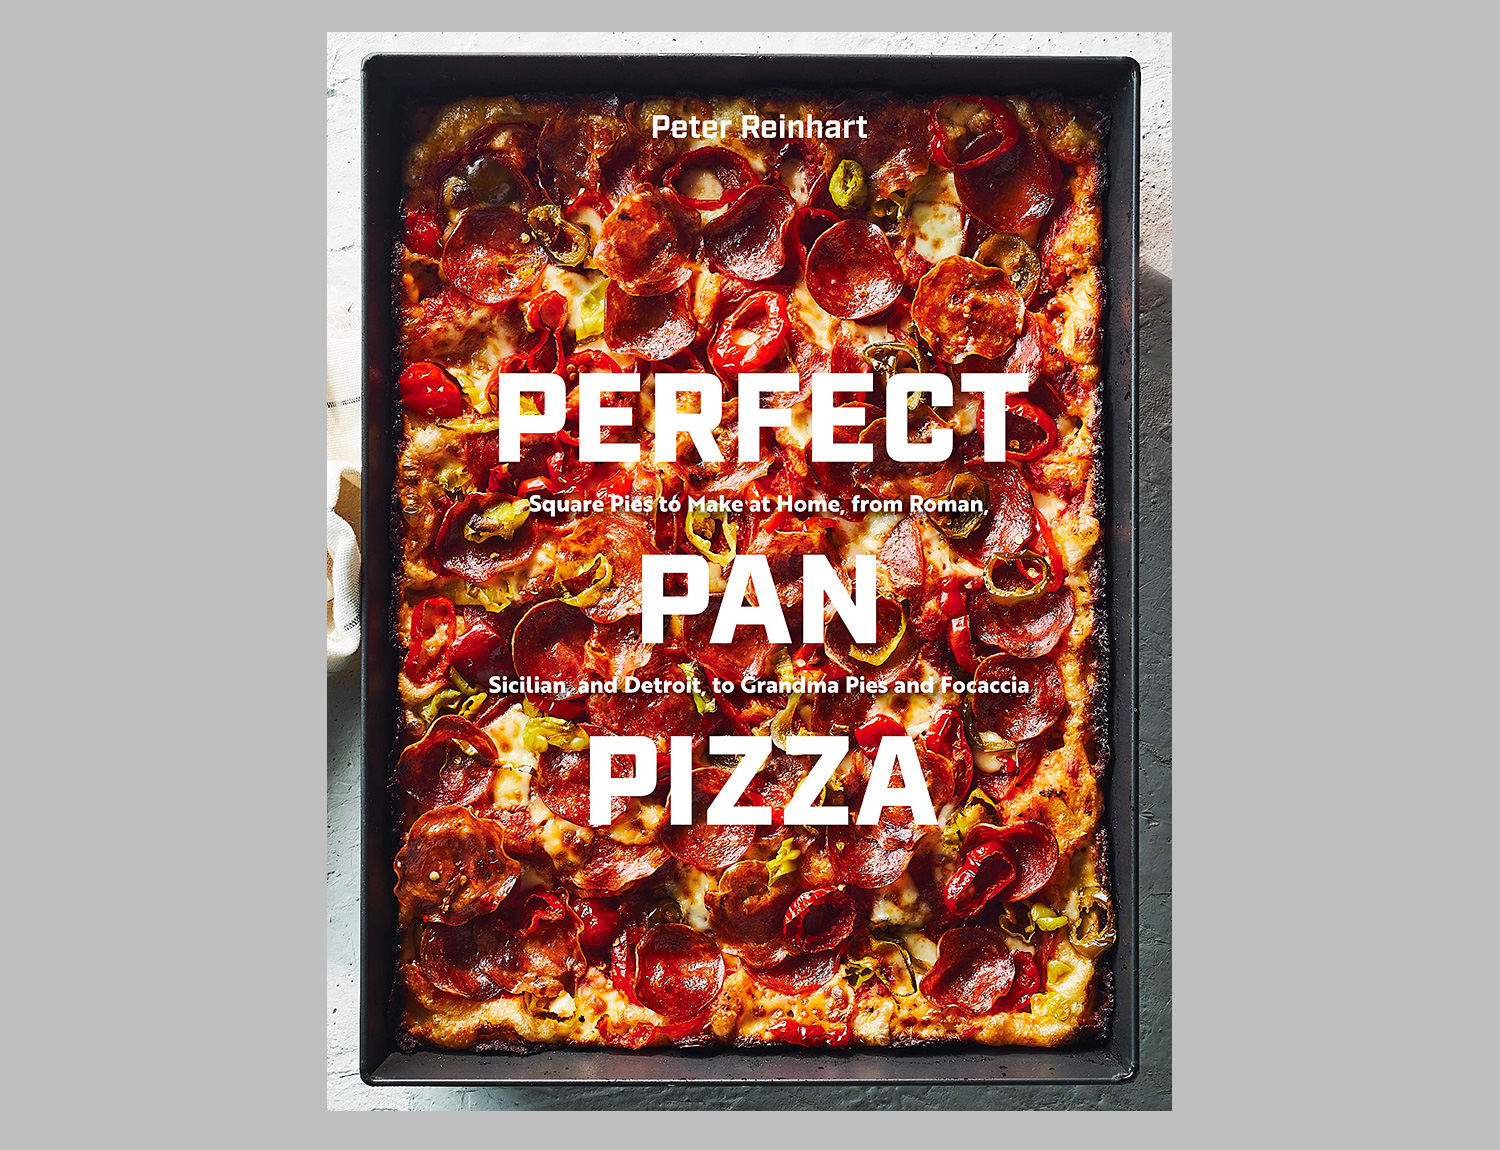 Perfect Pan Pizza: Square Pies to Make at Home at werd.com